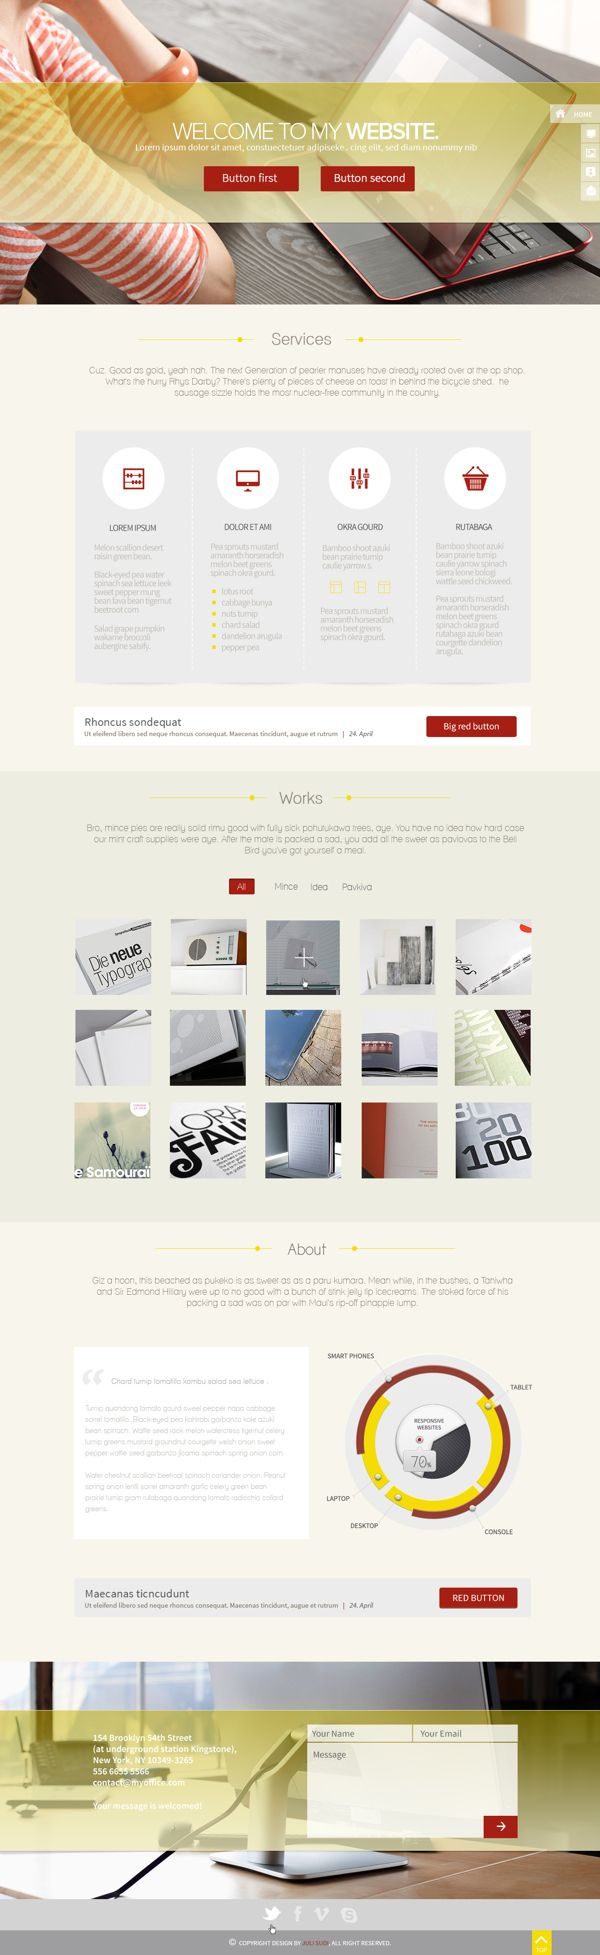 myOffice one page website design